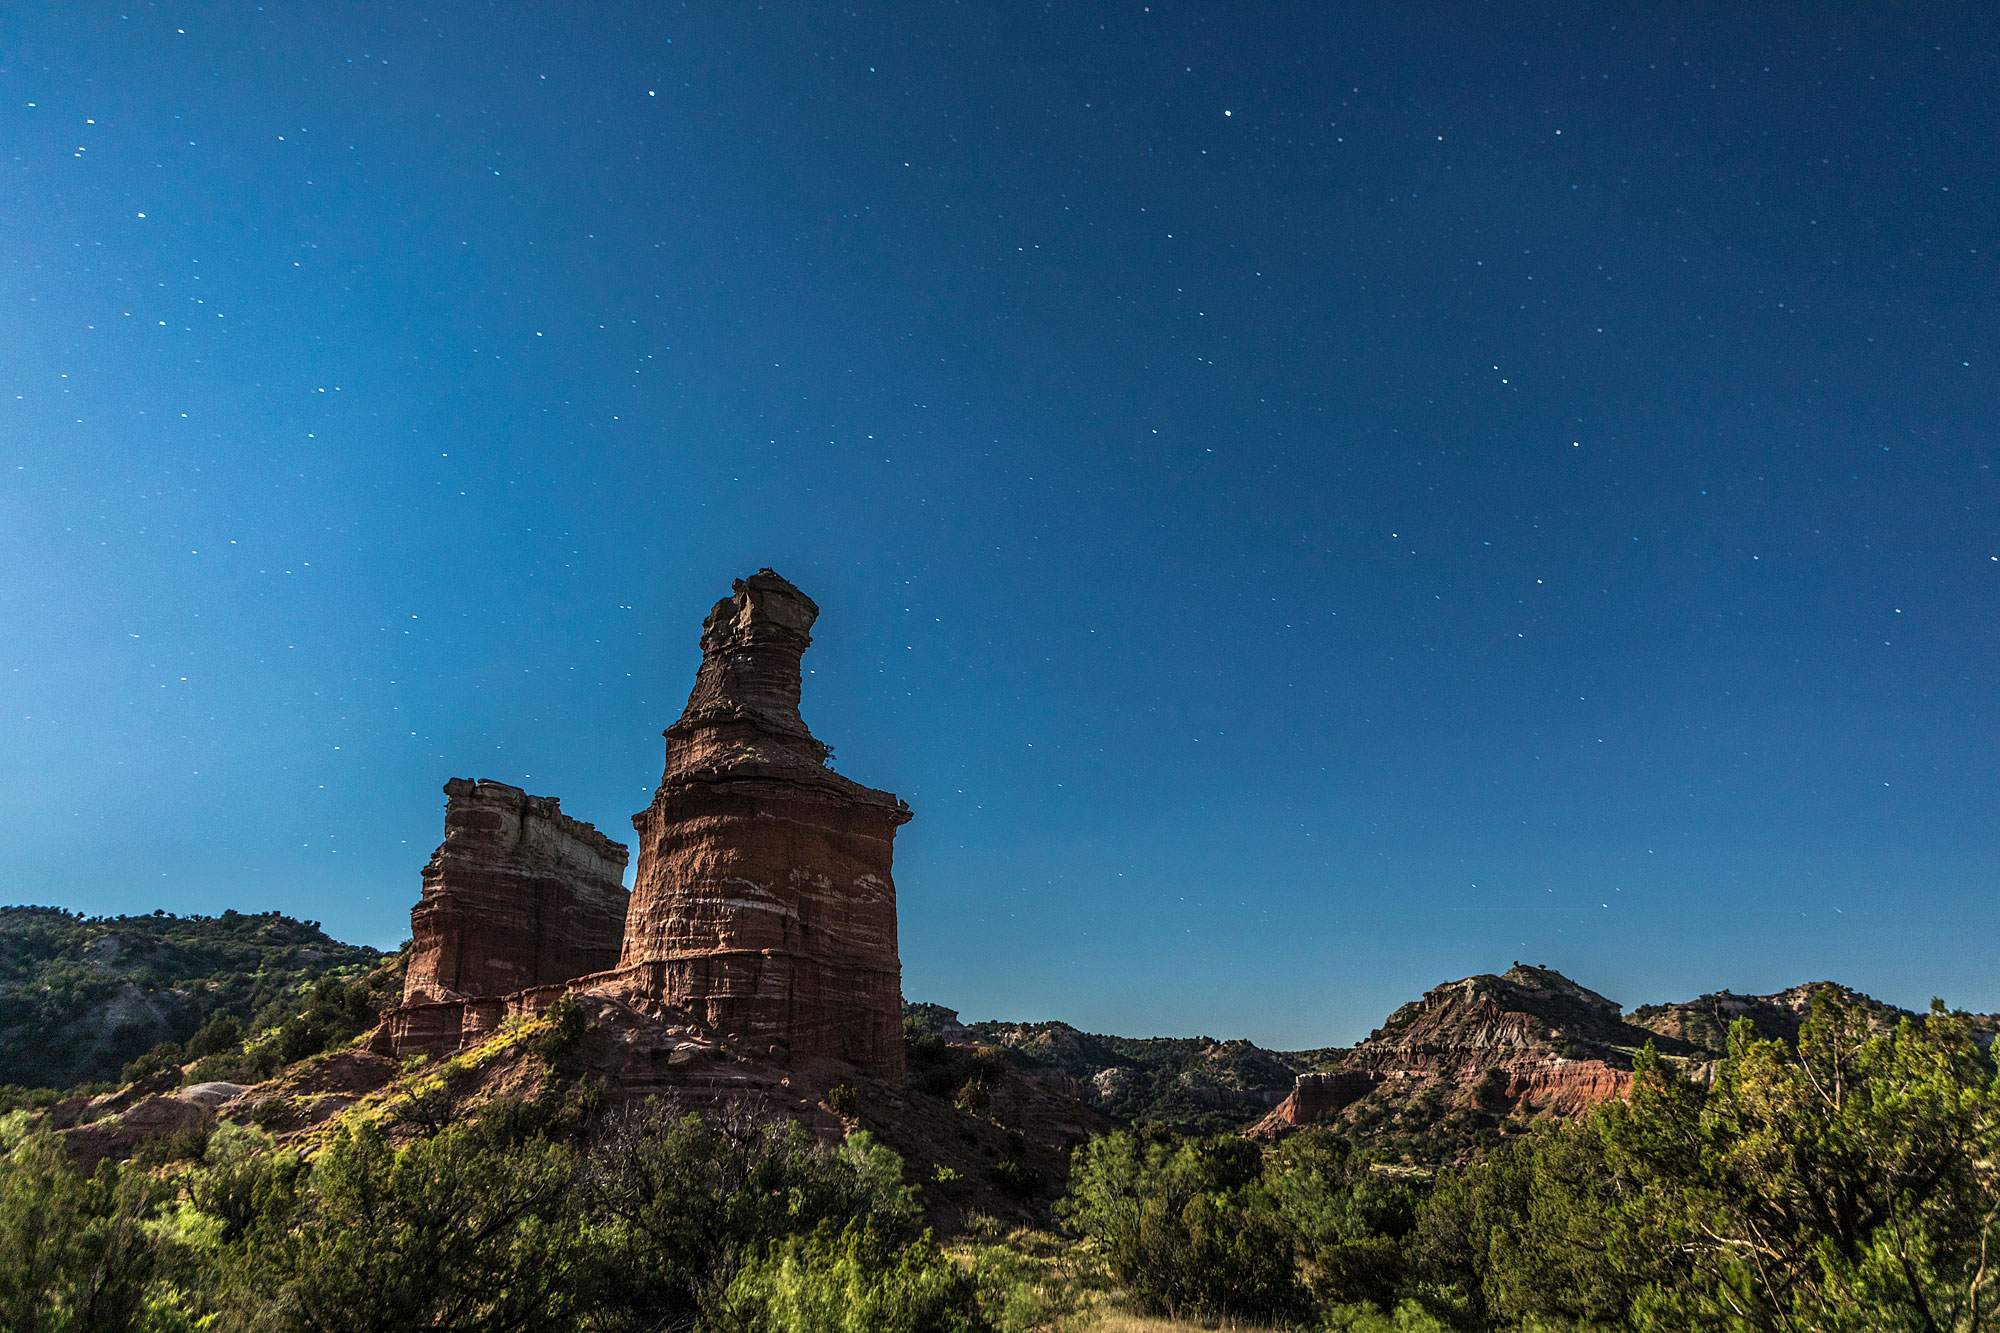 Palo Duro Canyon Lighthouse Under a Full Moon